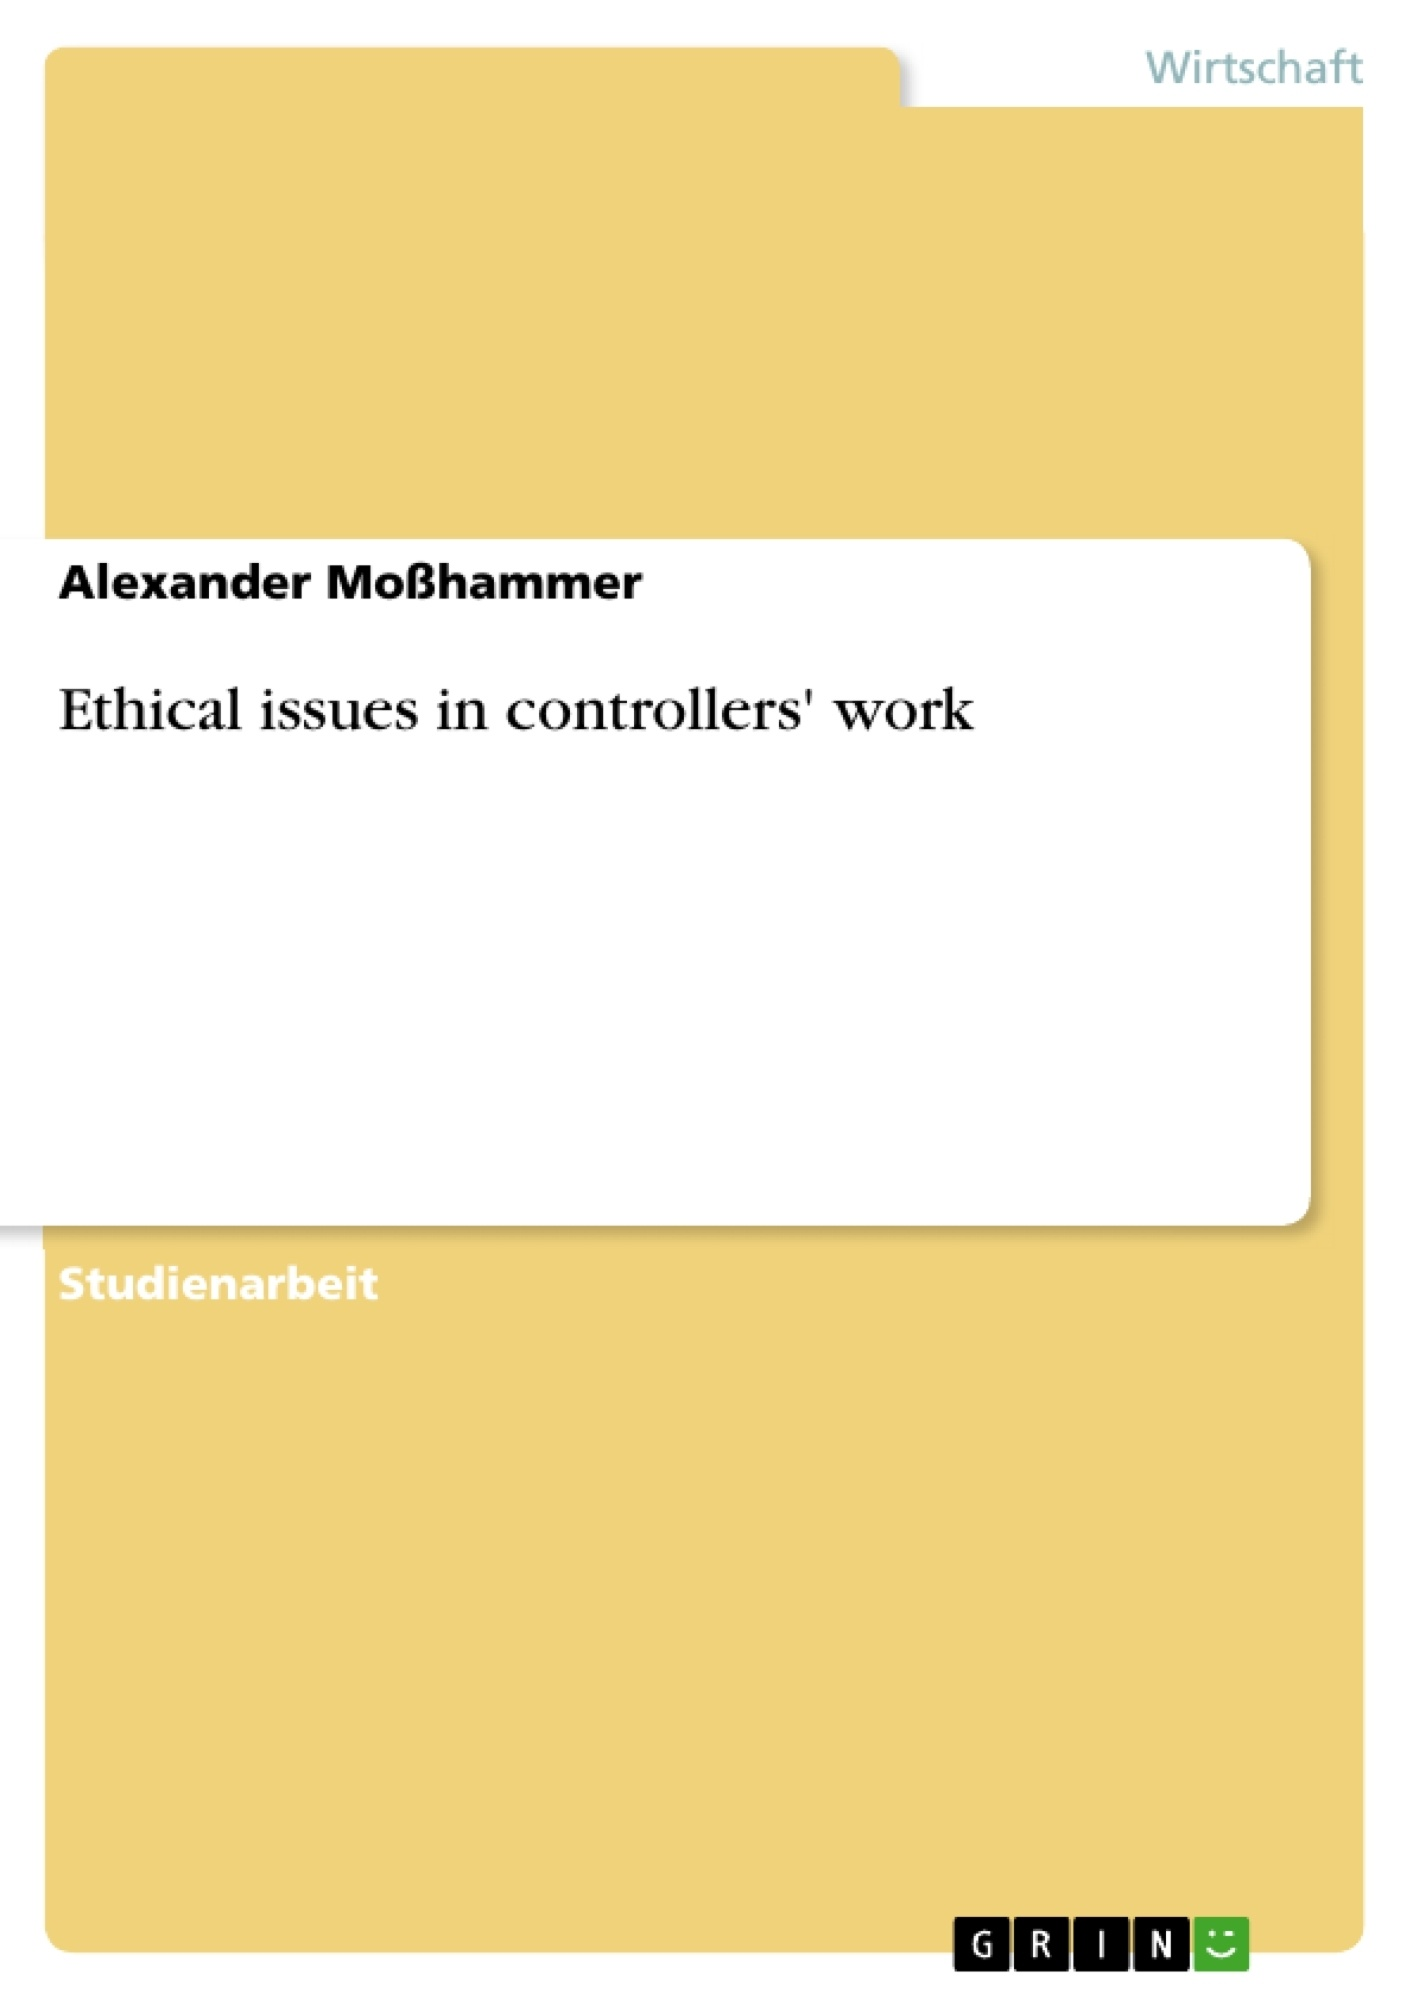 Titel: Ethical issues in controllers' work